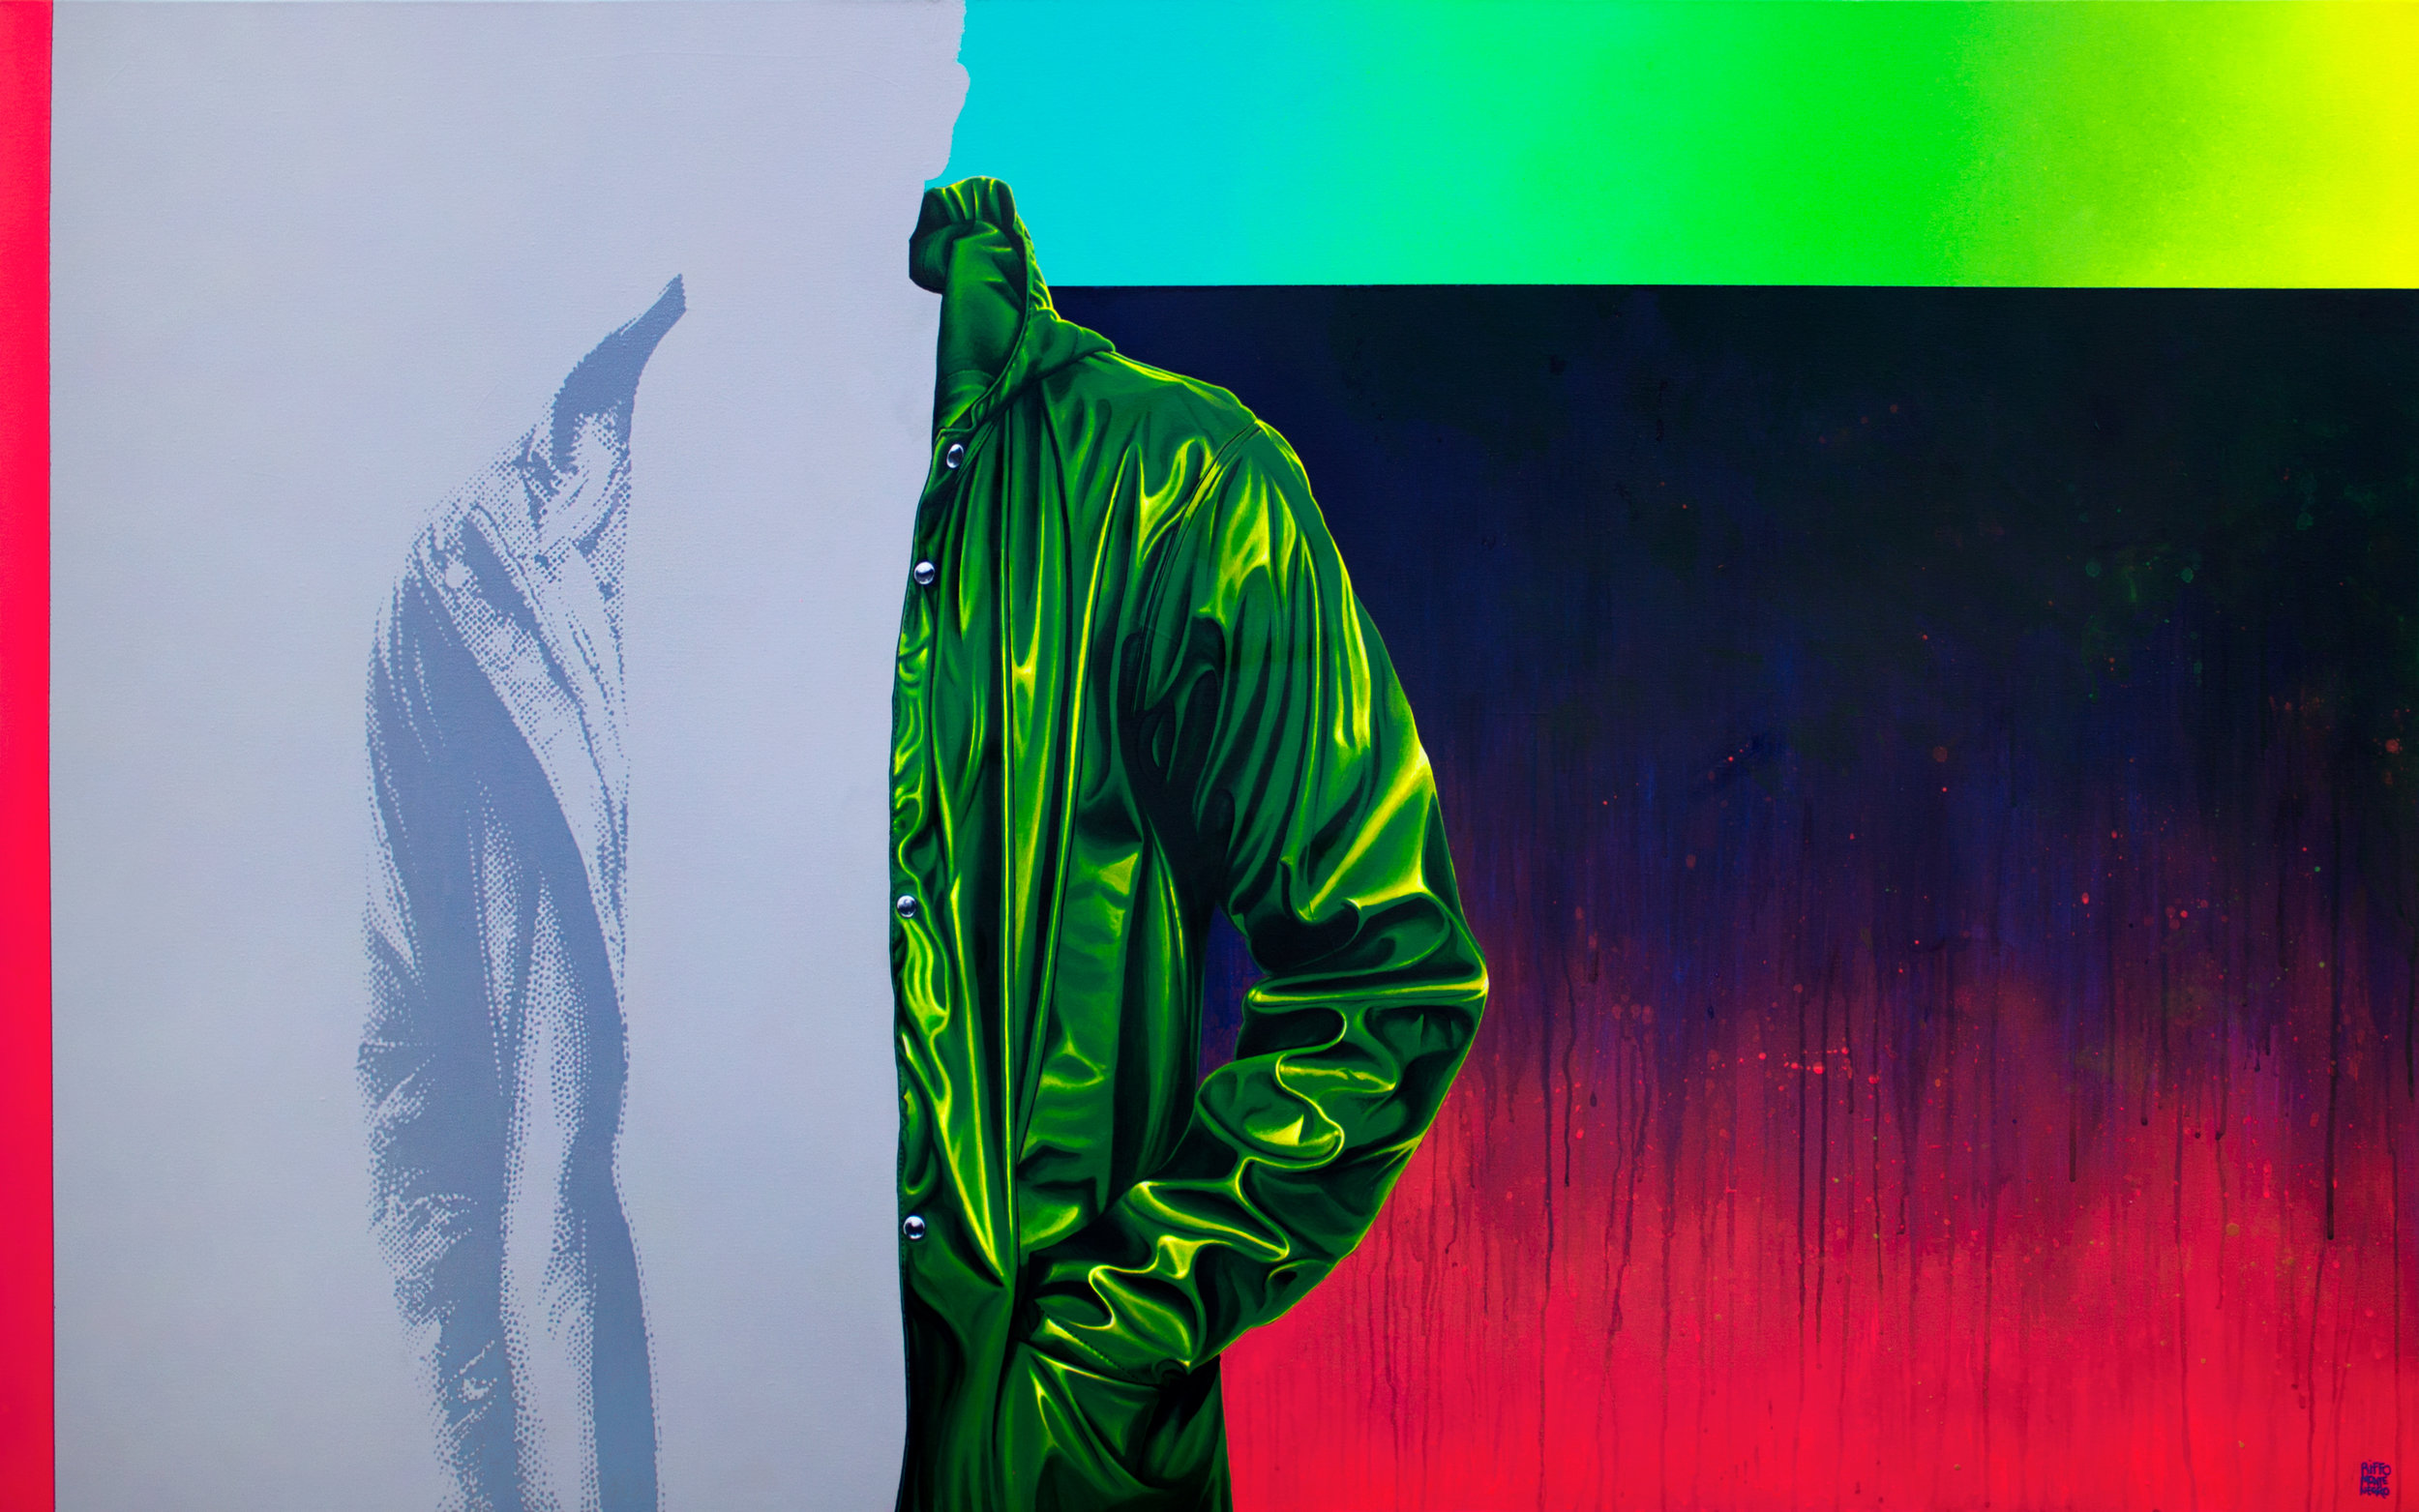 srm-untitled-raincoat9-100x160cm-2018 copy.jpg